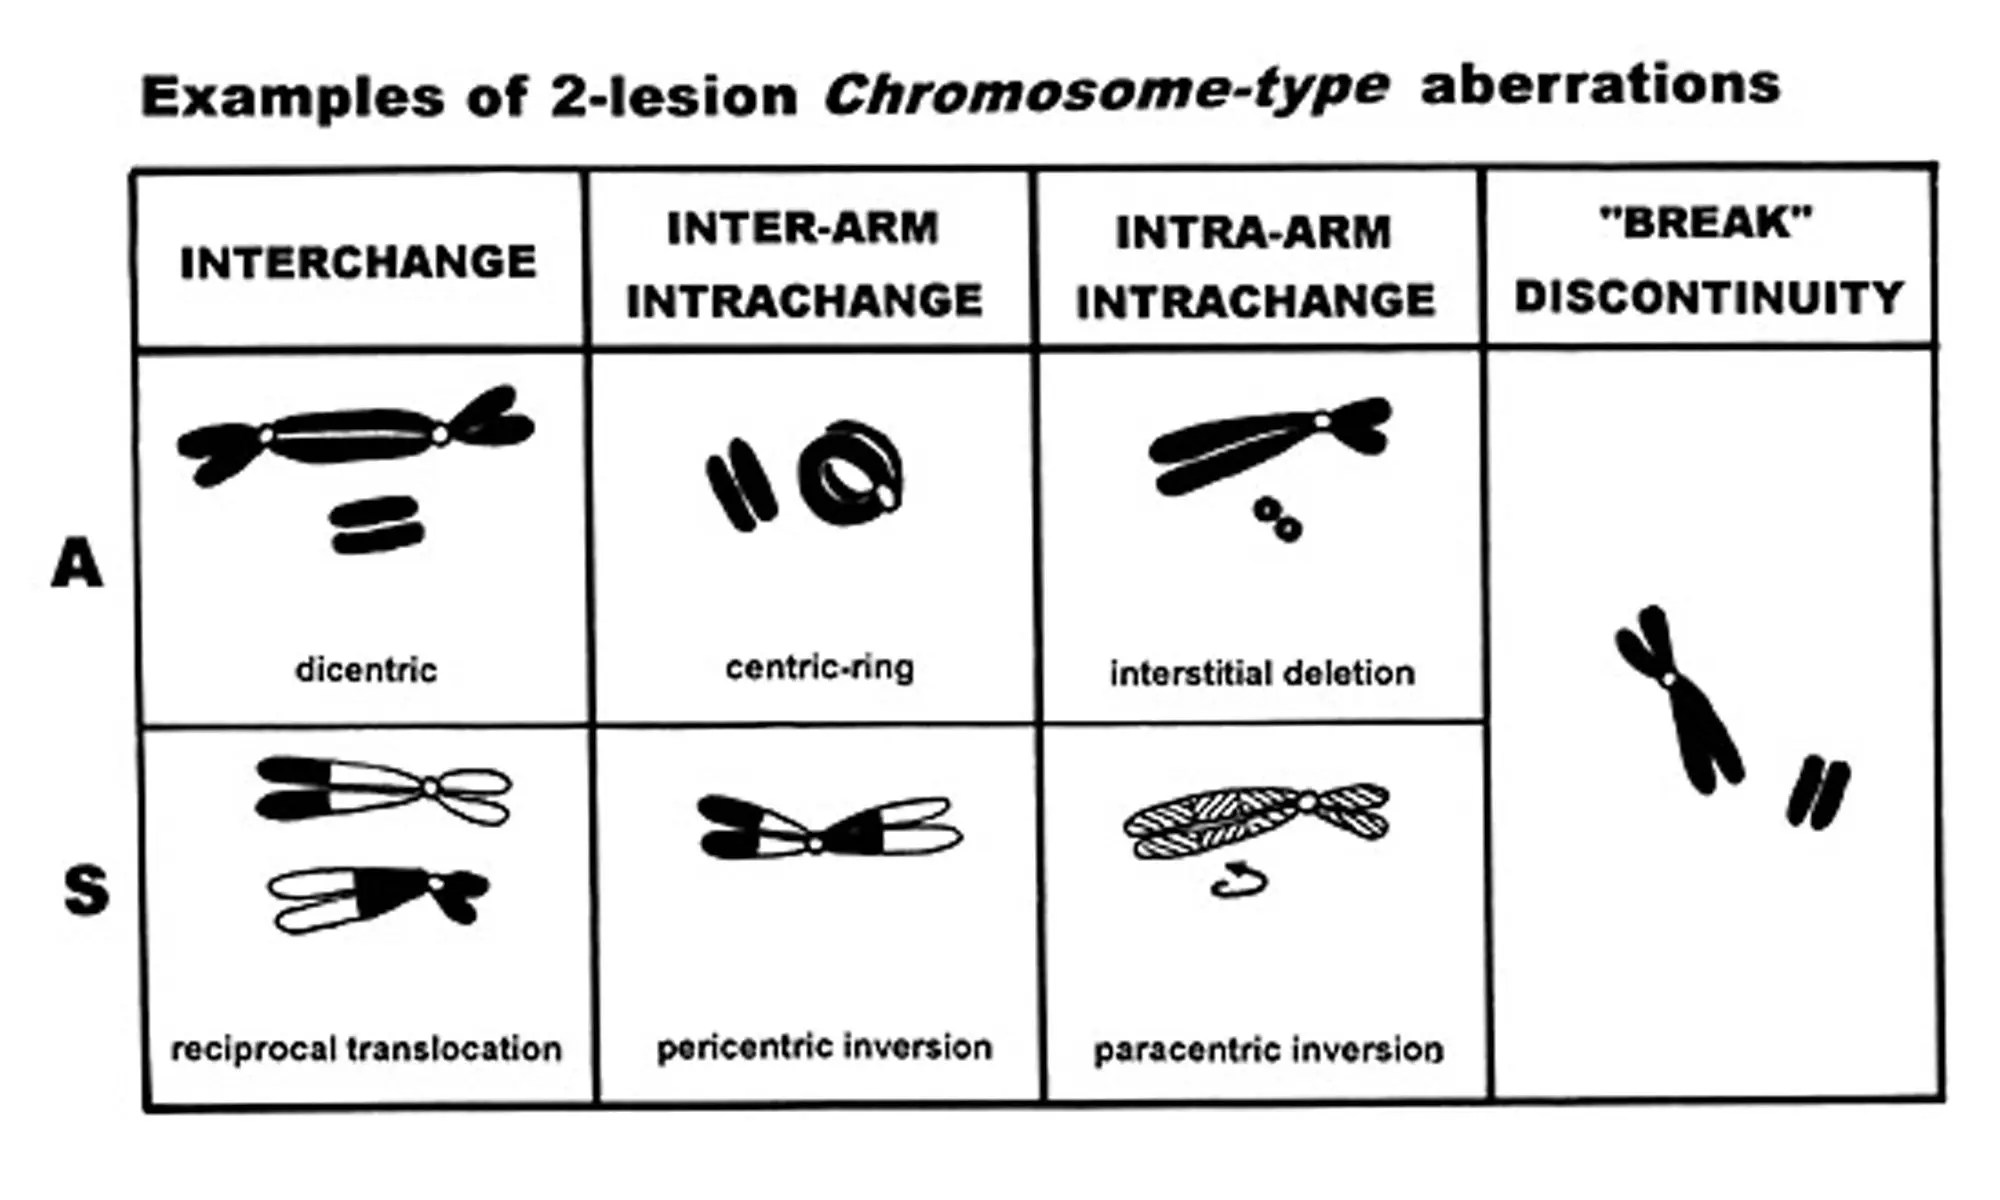 image of chromosome aberrations